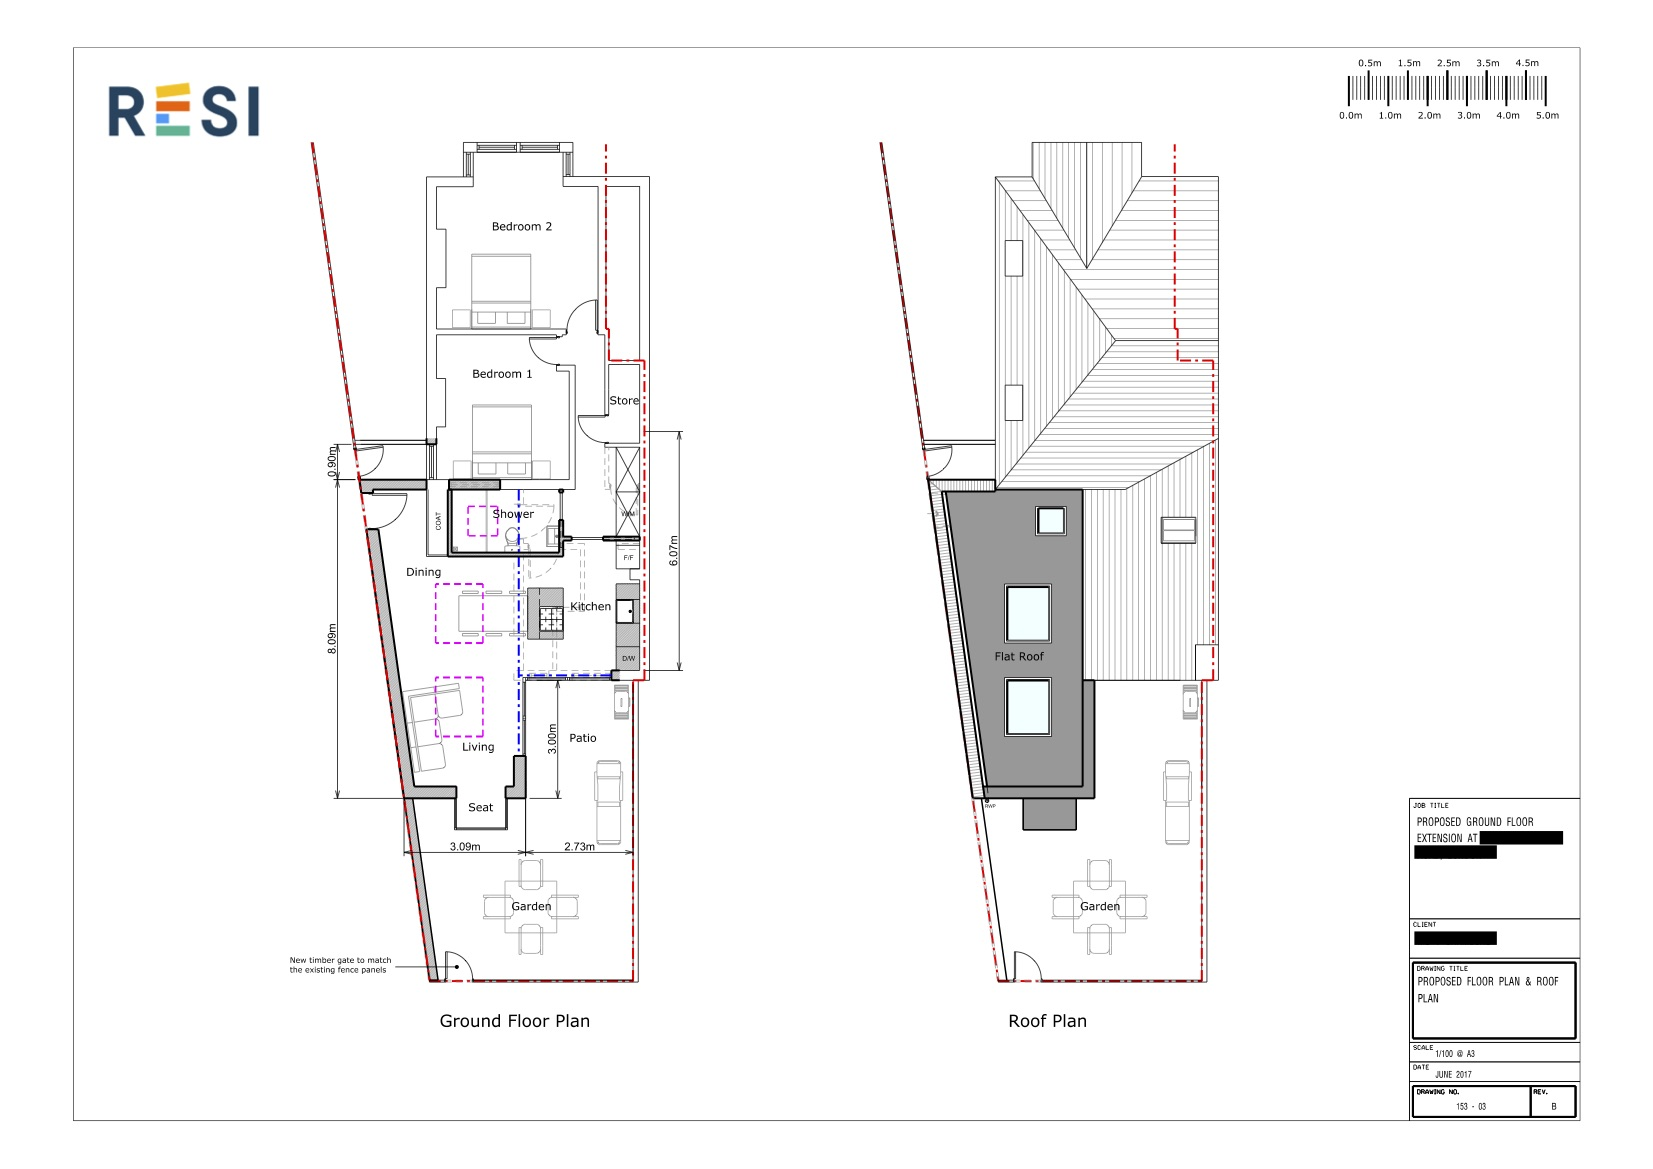 Revised architectural drawings   floor and roof plans